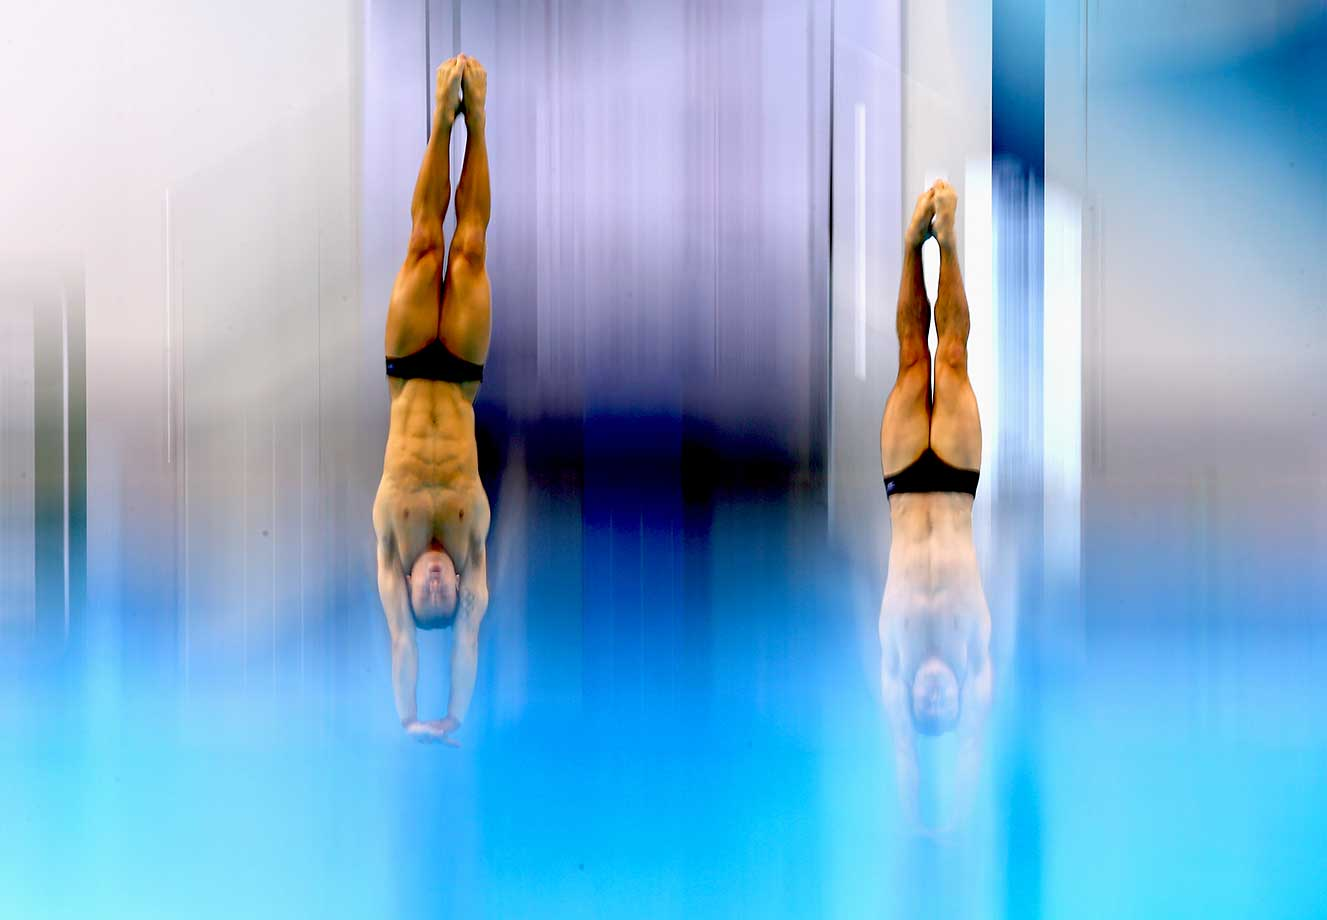 Tom Daley and Daniel Goodfellow of Great Britain dive in the 10m Synchro Platform Final during day one of the FINA/NVC Diving World Series 2016.